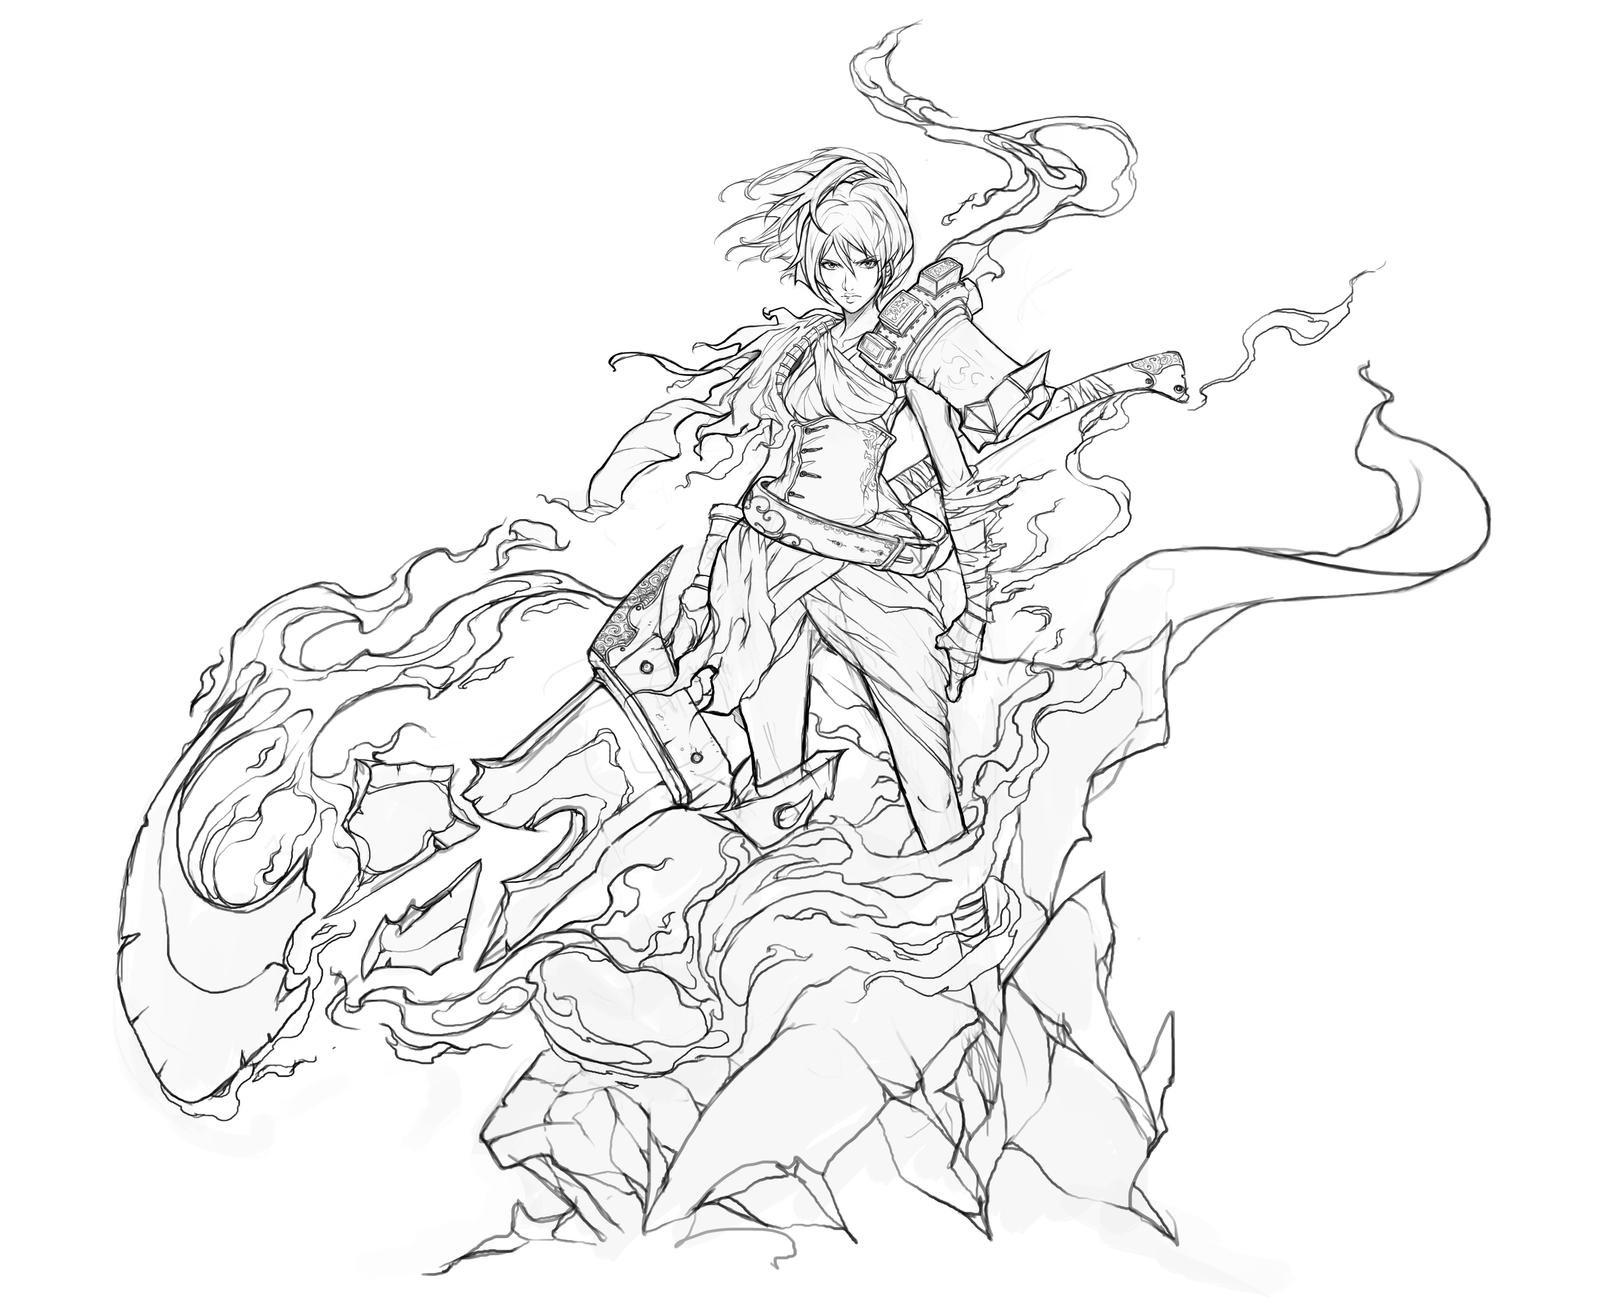 The Line Artwork : Riven stream lineart by muju on deviantart